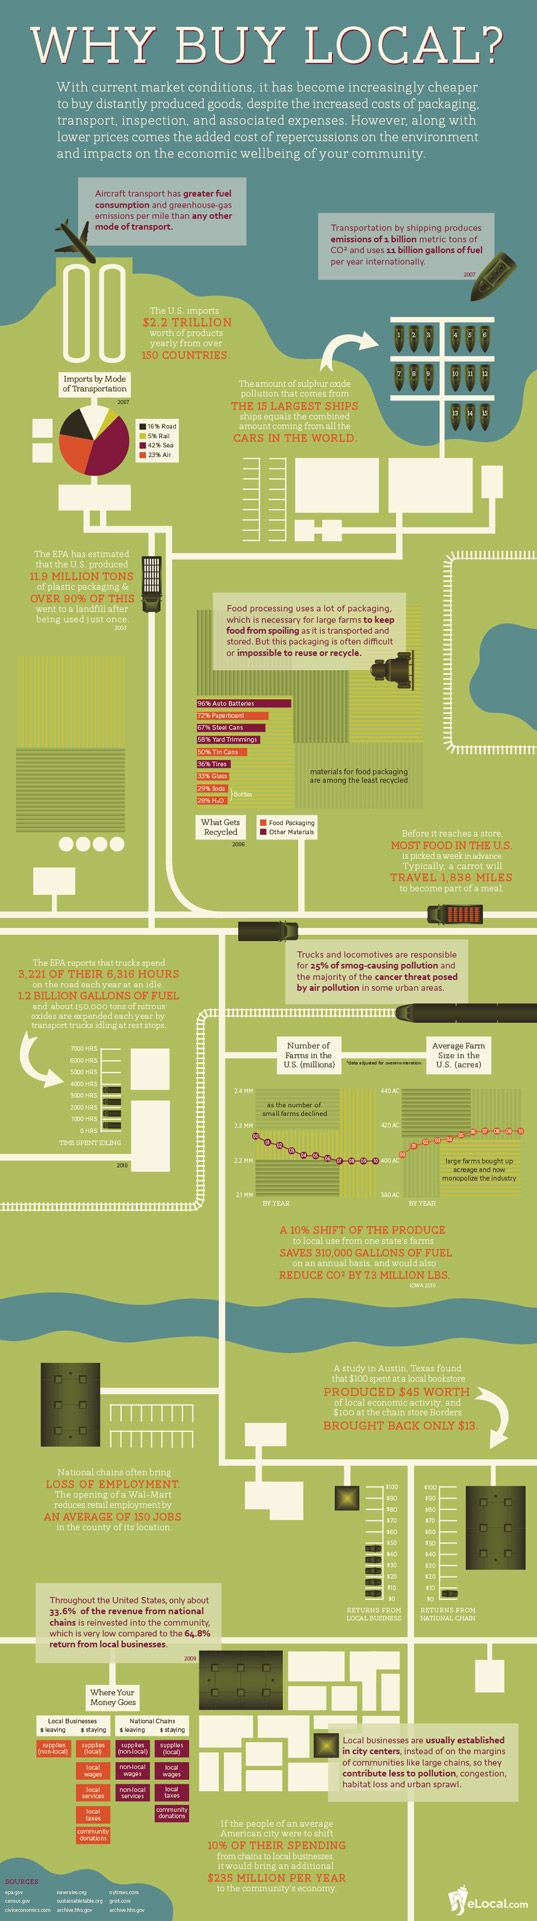 eLocal Infographic Shows Why It's Important to Shop Local This Holiday Season